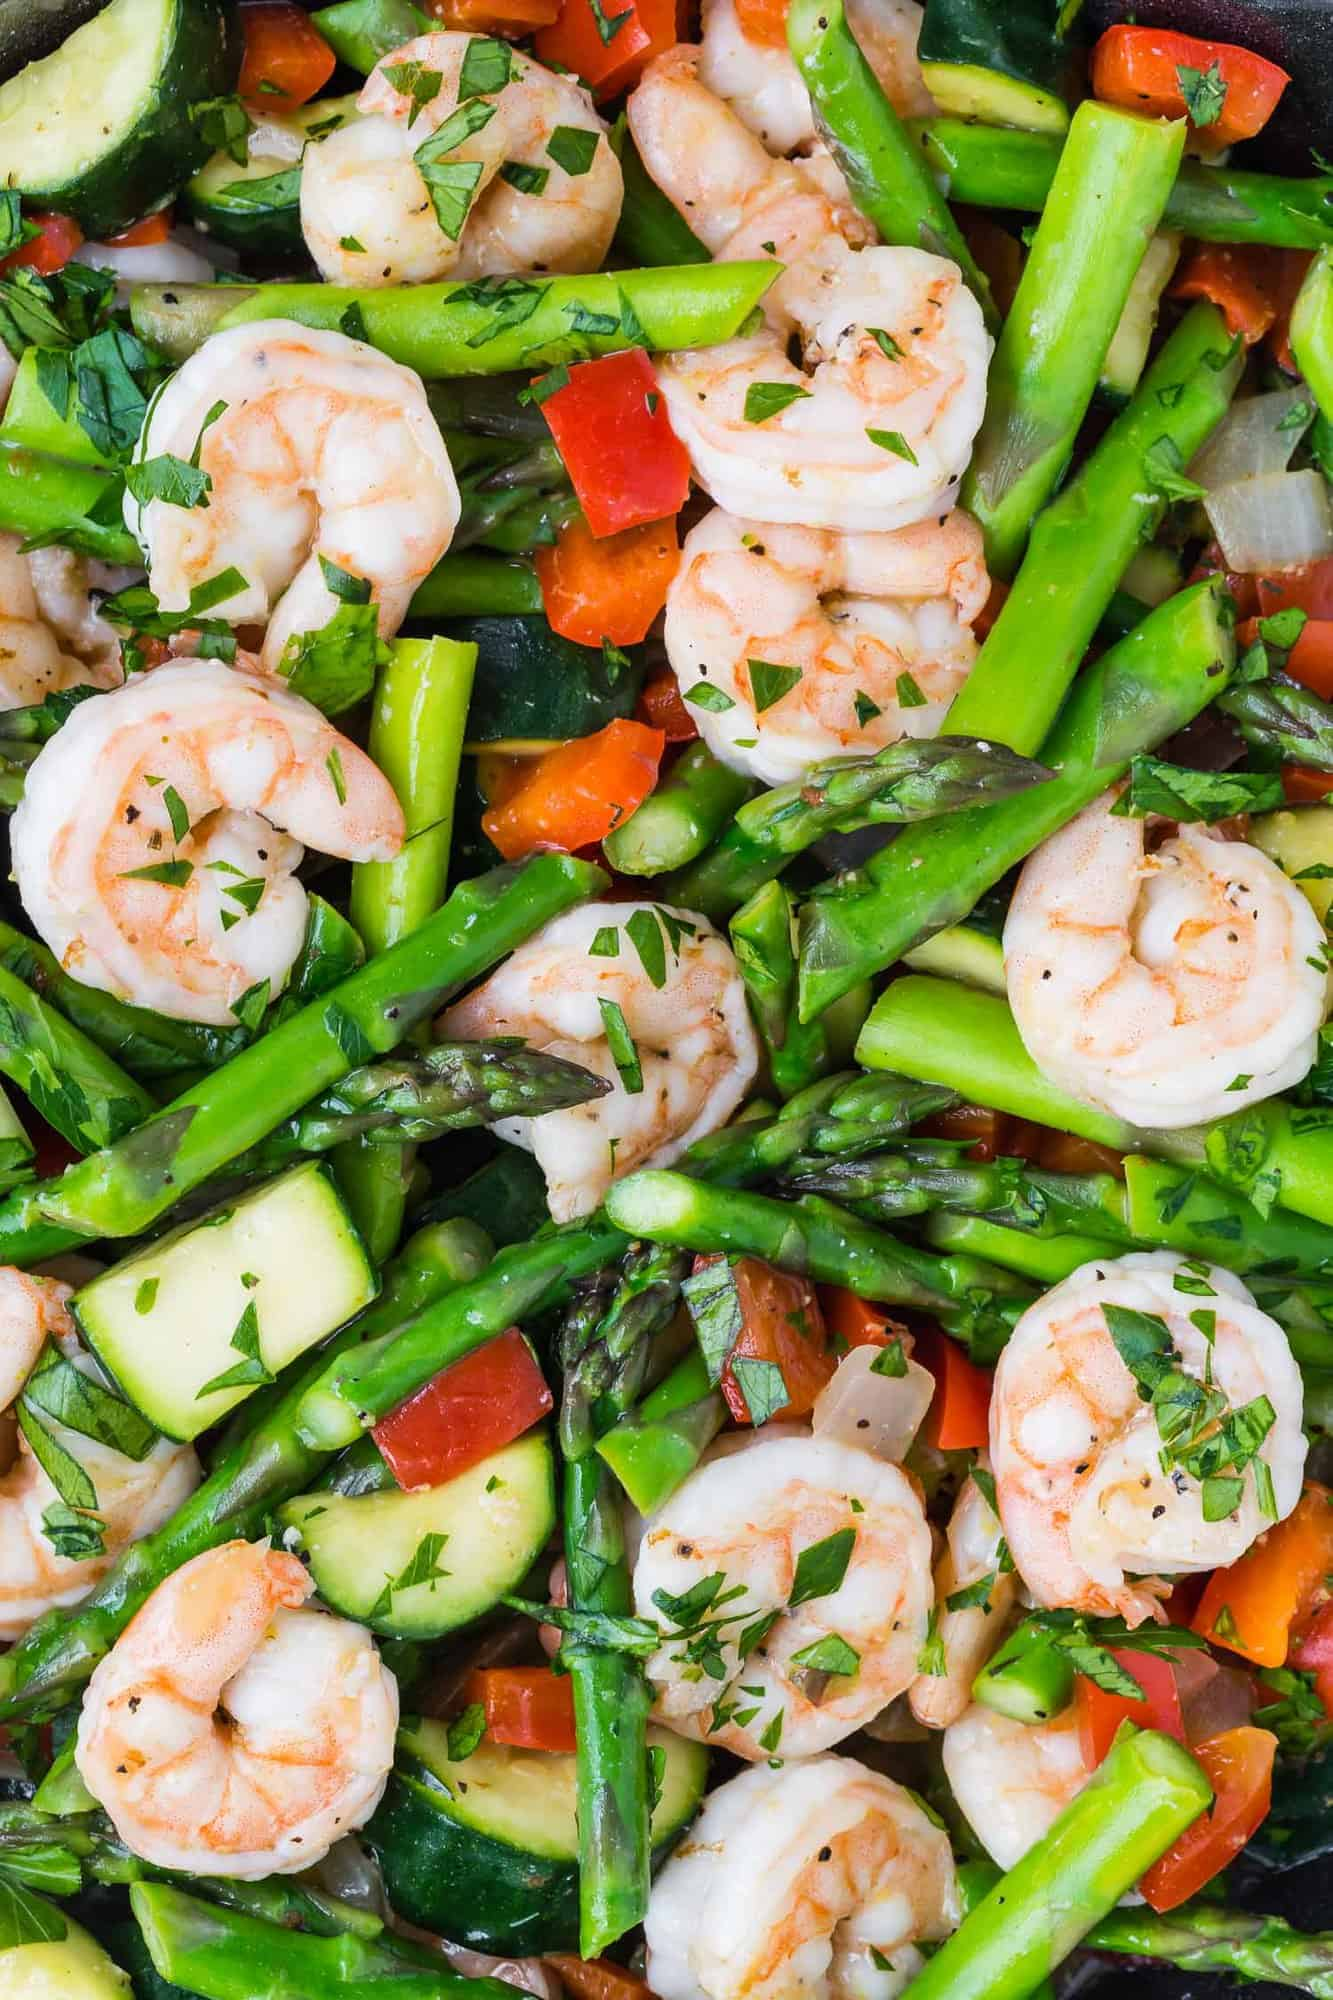 Close up view of a shrimp stir fry with asparagus, zucchini, and red bell peppers.